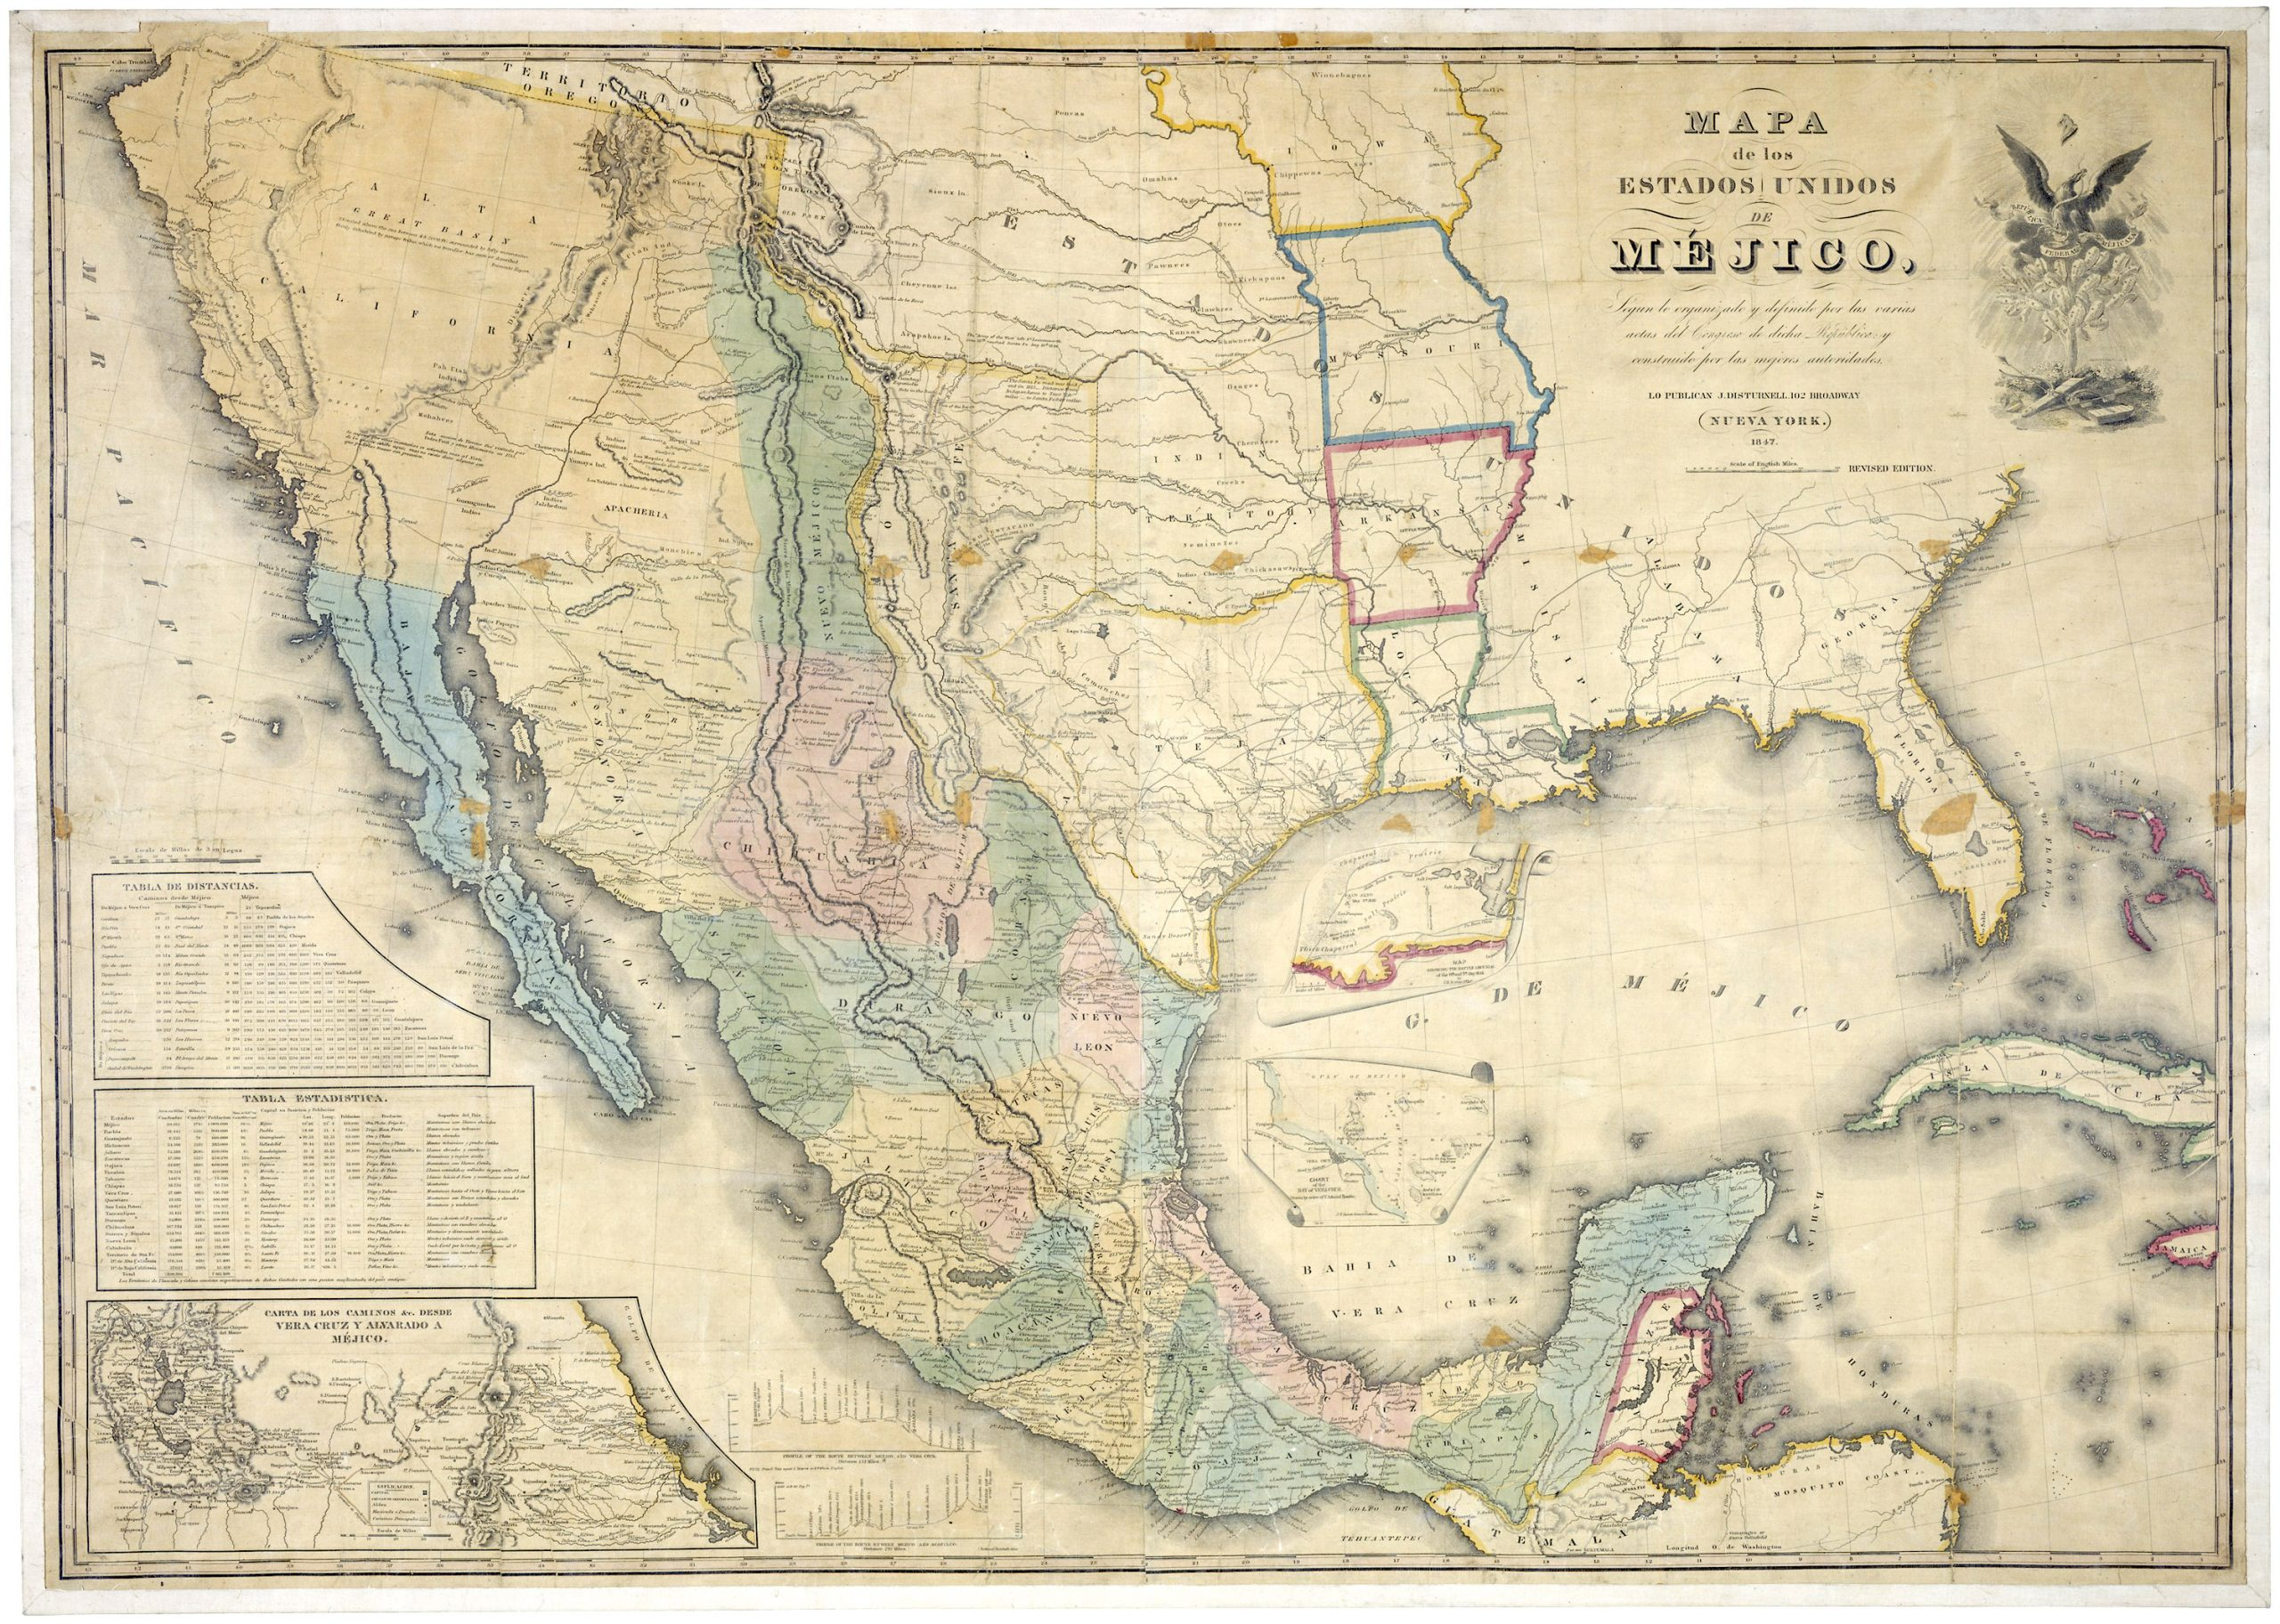 Map of Mexico, 1847